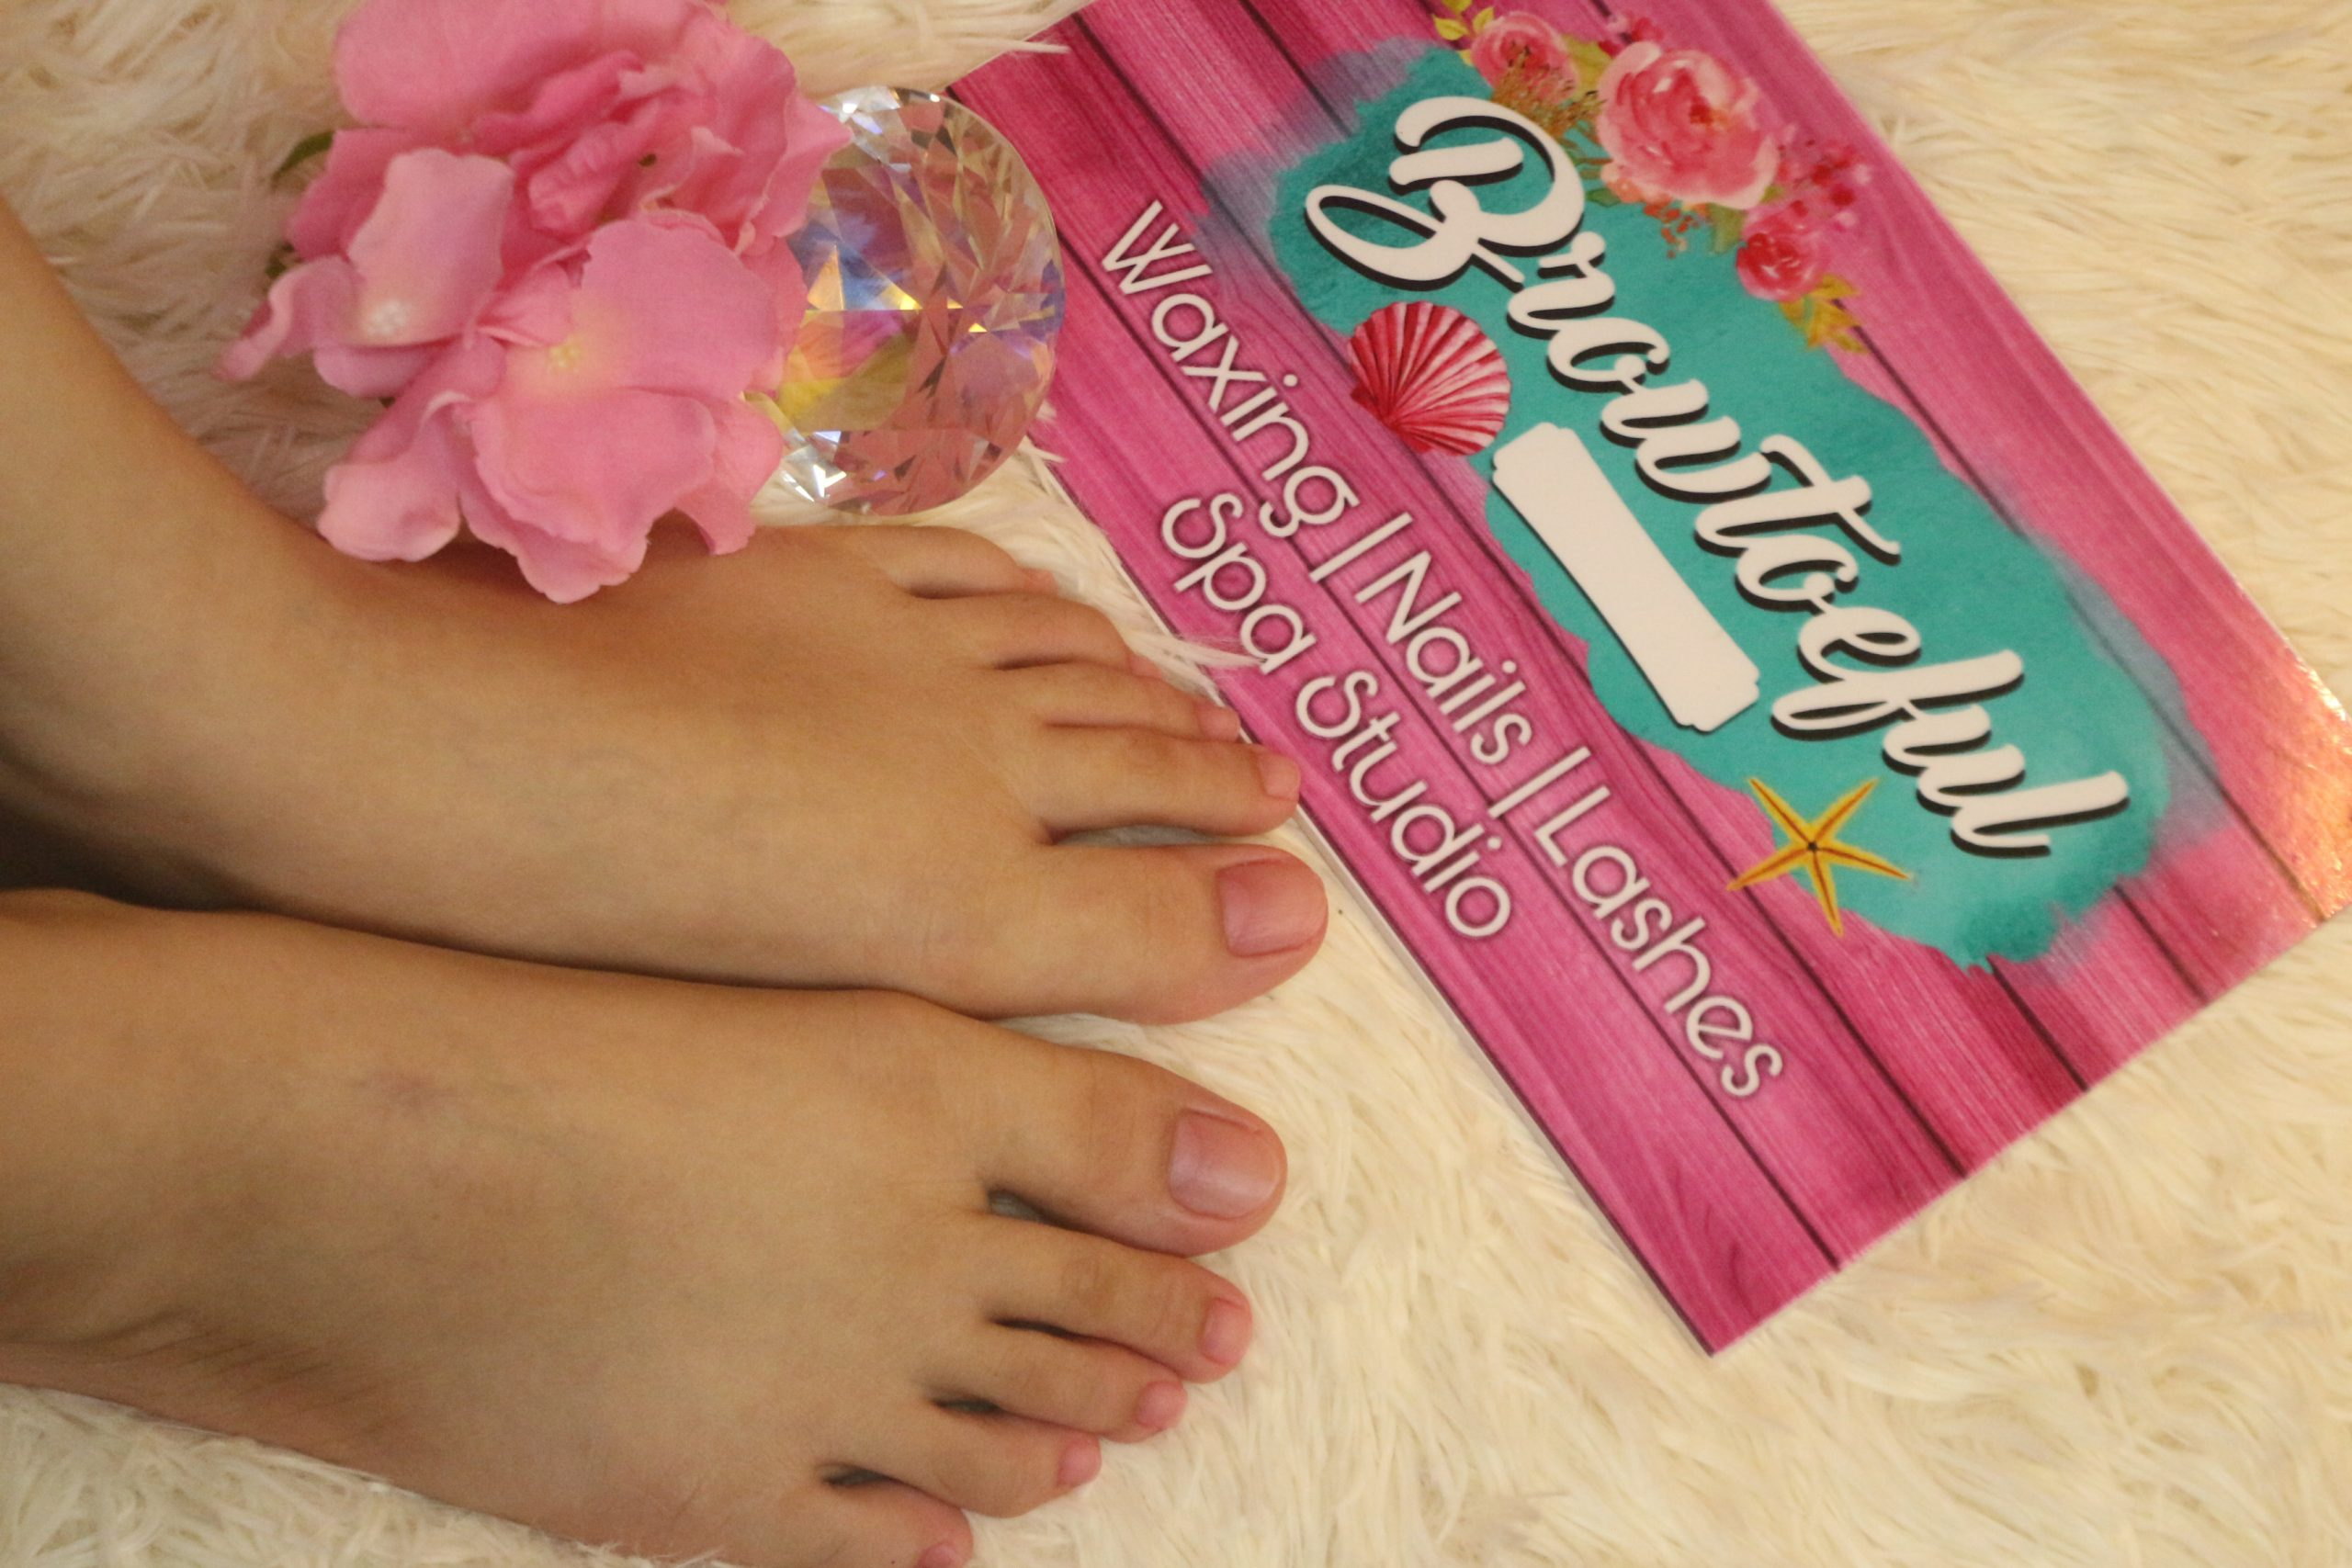 Pamper yourself with Browtoeful!